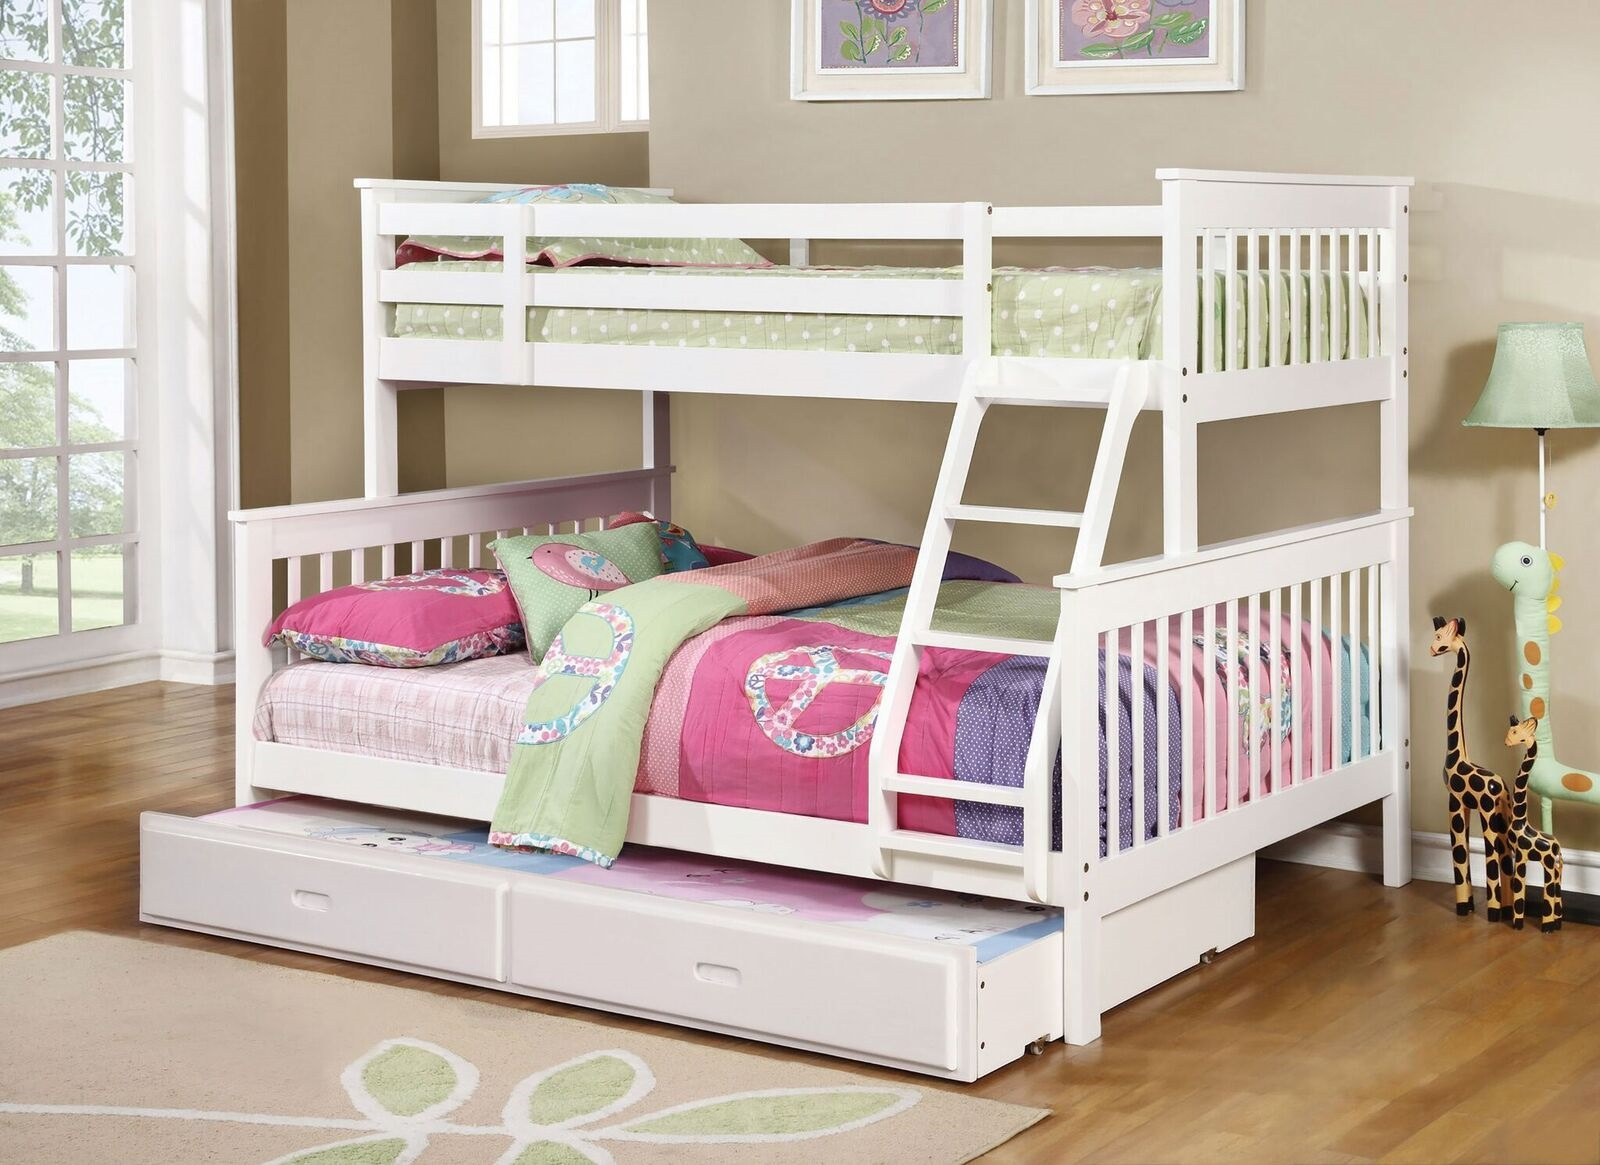 Coaster chapman white twin full bunk bed with trundle storage dallas tx kids bunk bed White twin trundle bedroom set